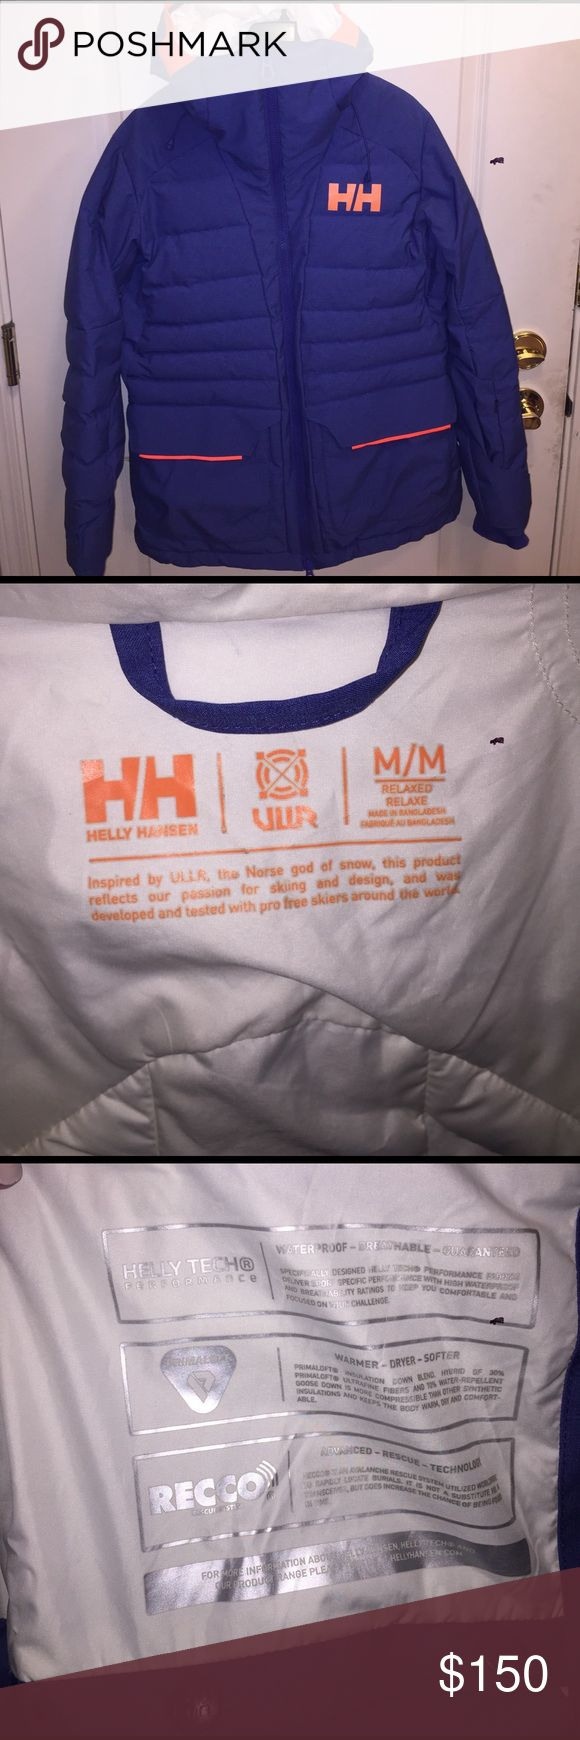 Helly Hansen Ski Jacket Helly Hansen Cordelia Ski/Snowboard Jacket. Relaxed fit. Primaloft, waterproof, breathable, RECCO. Underarm zippers. Blue/purple with orange trim. Used, excellent condition. Smoke free home. Helly Hansen Jackets & Coats Puffers